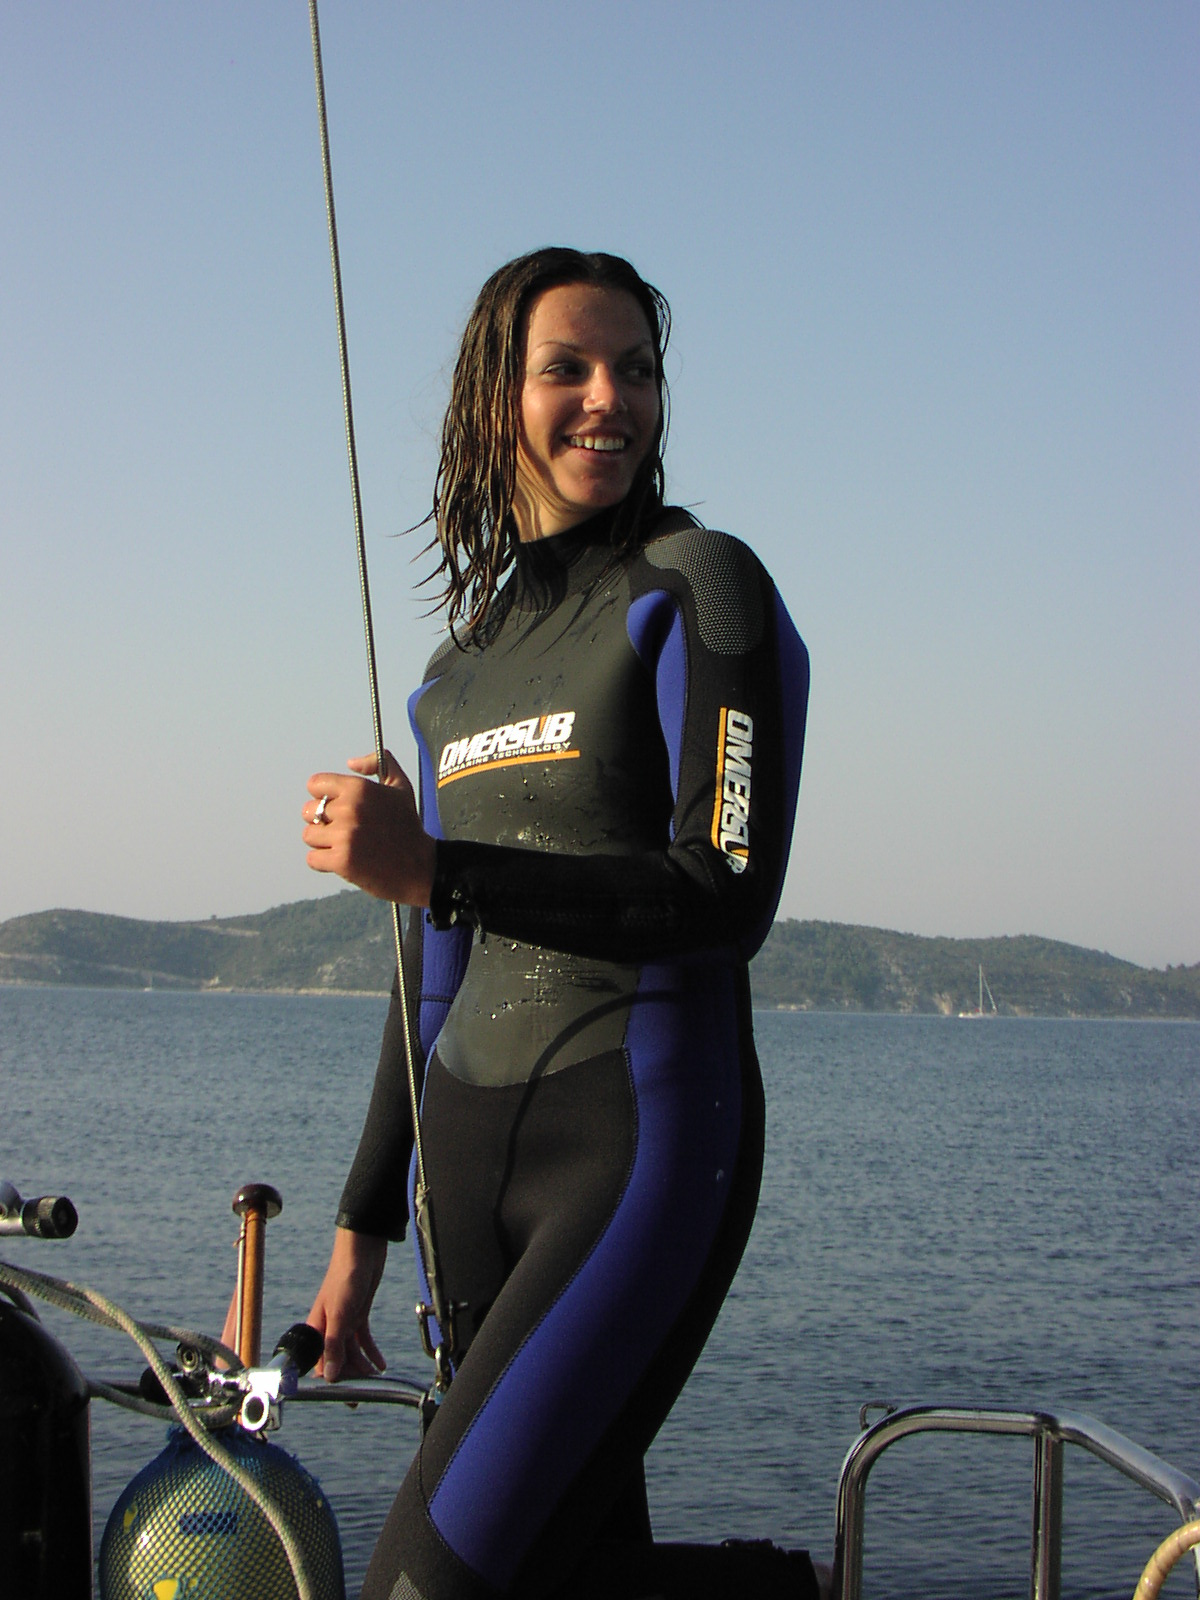 Preparations for diving